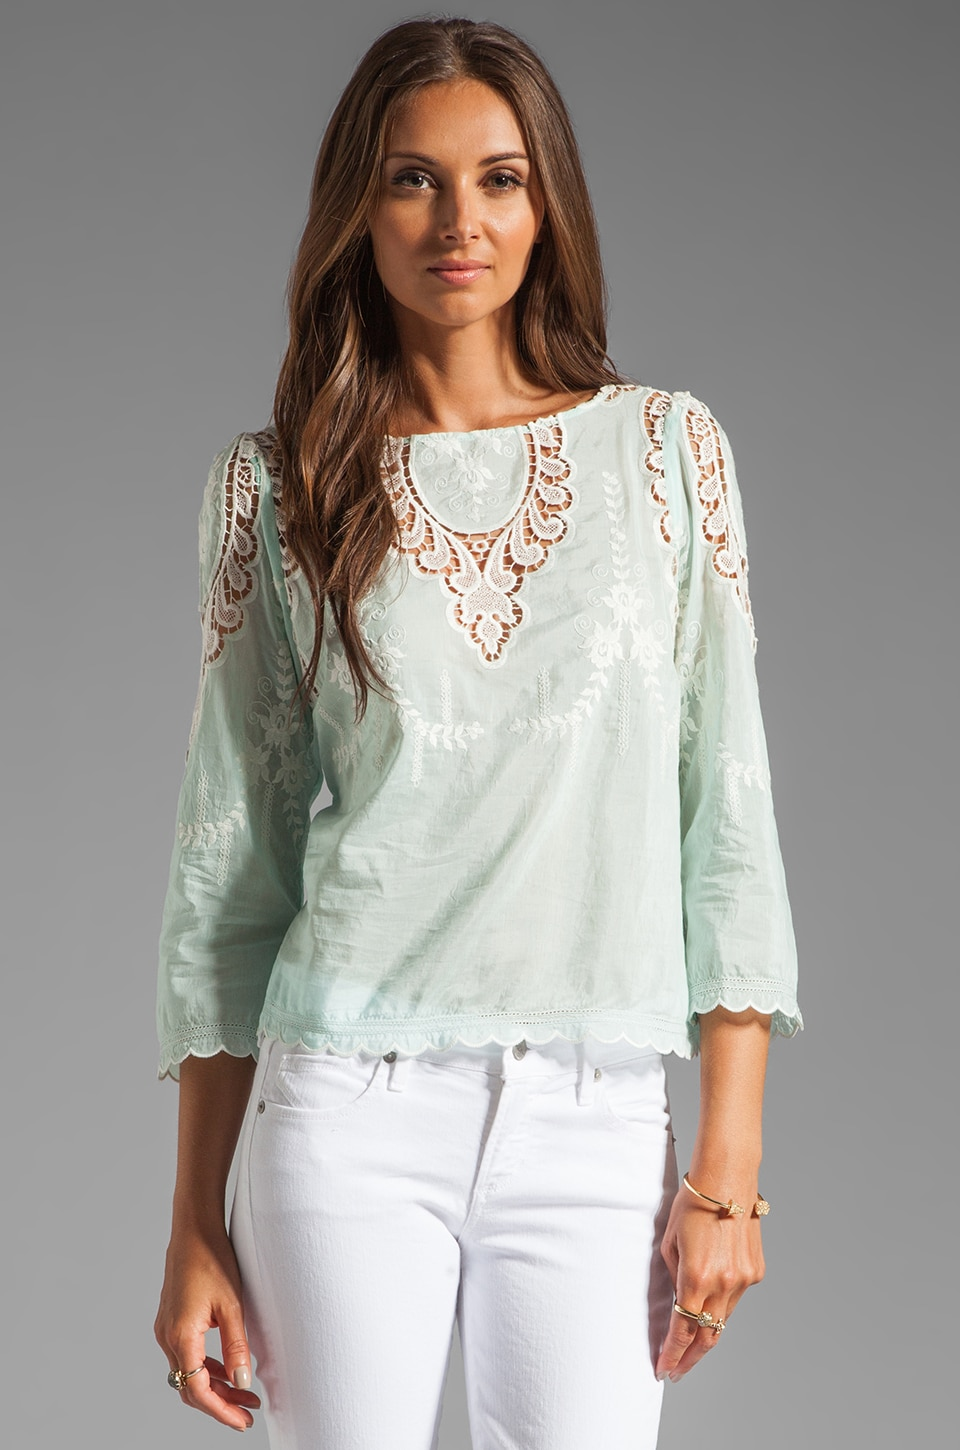 Dolce Vita Alma Top in Mint